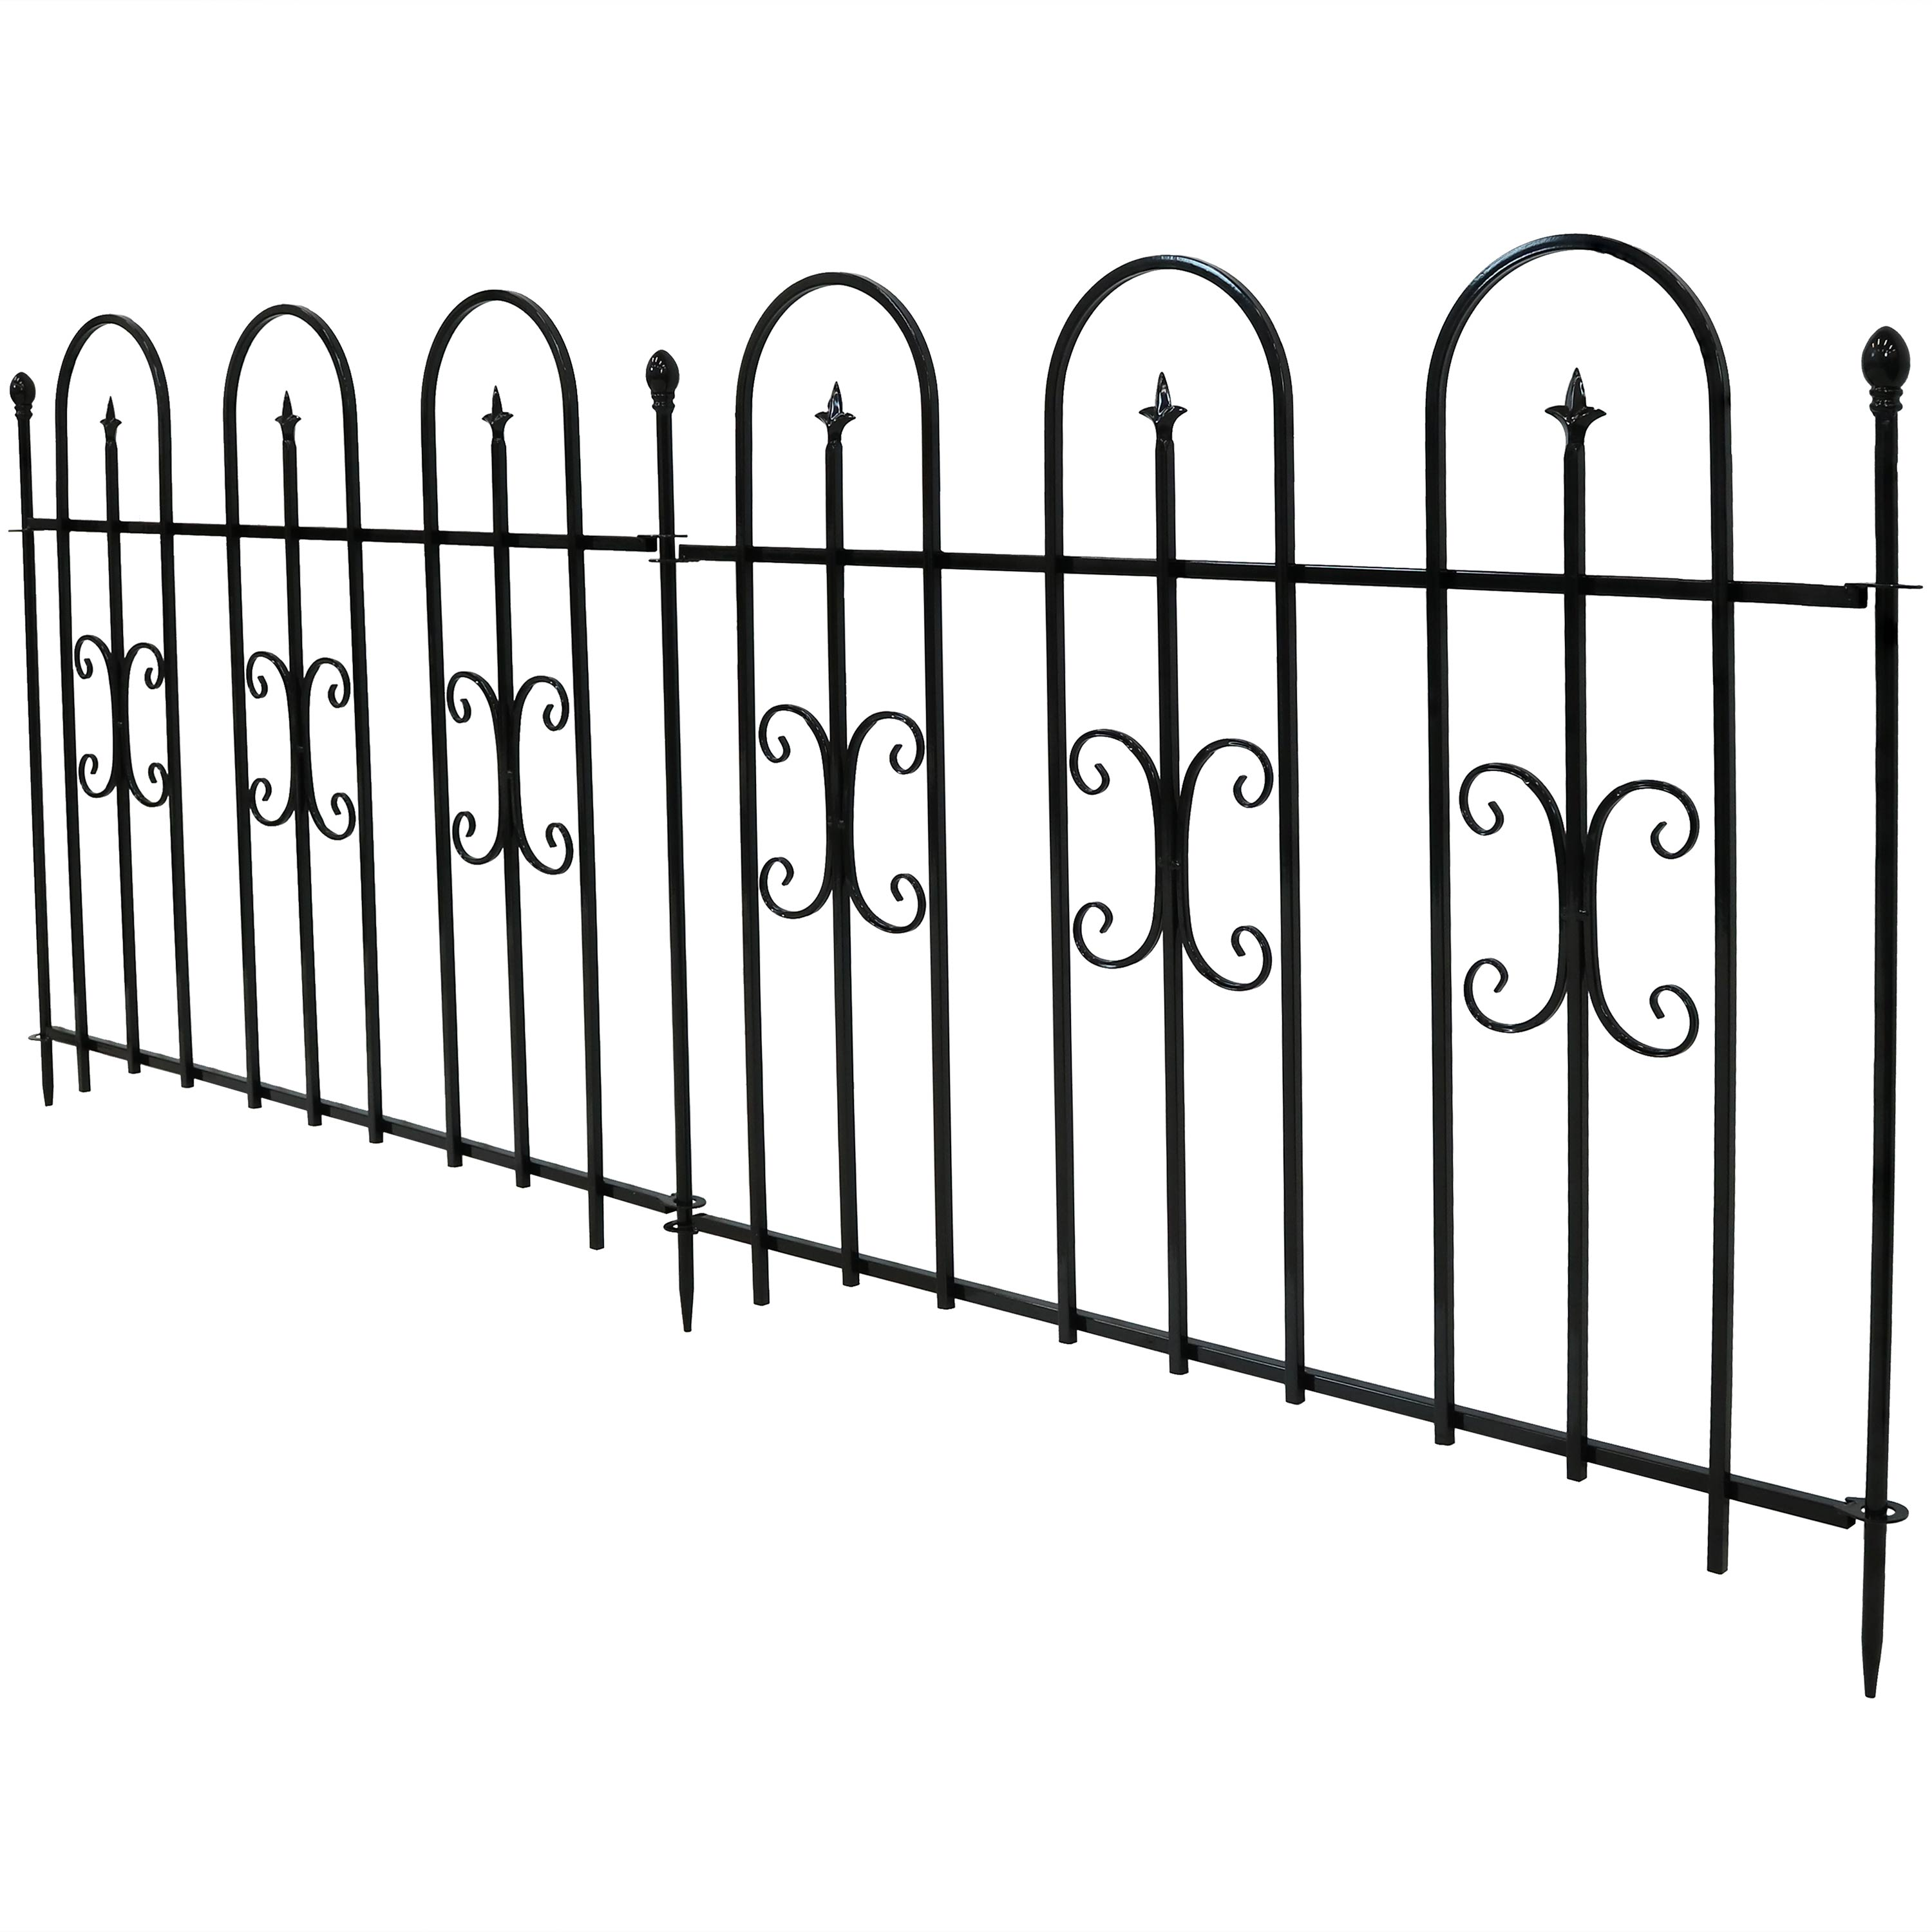 Decorative Finial Garden Landscape Metal Border Fence Black Per Panel Feet Overall Photo